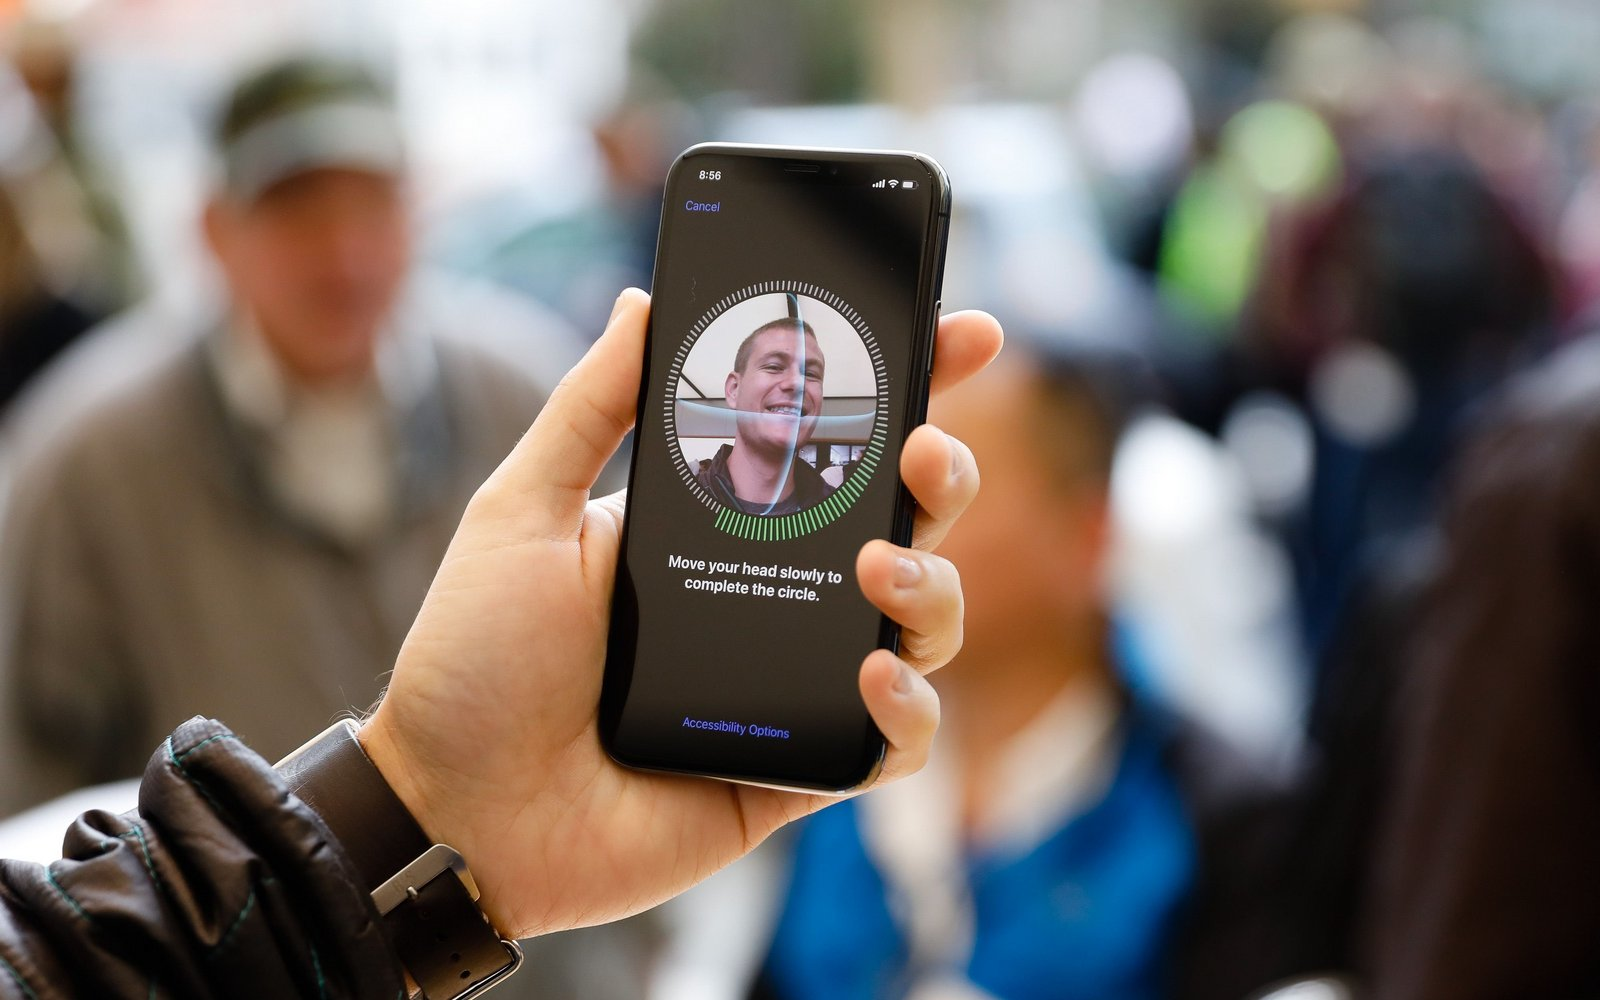 iOS 11.3 will remove one of the limitations of Face ID